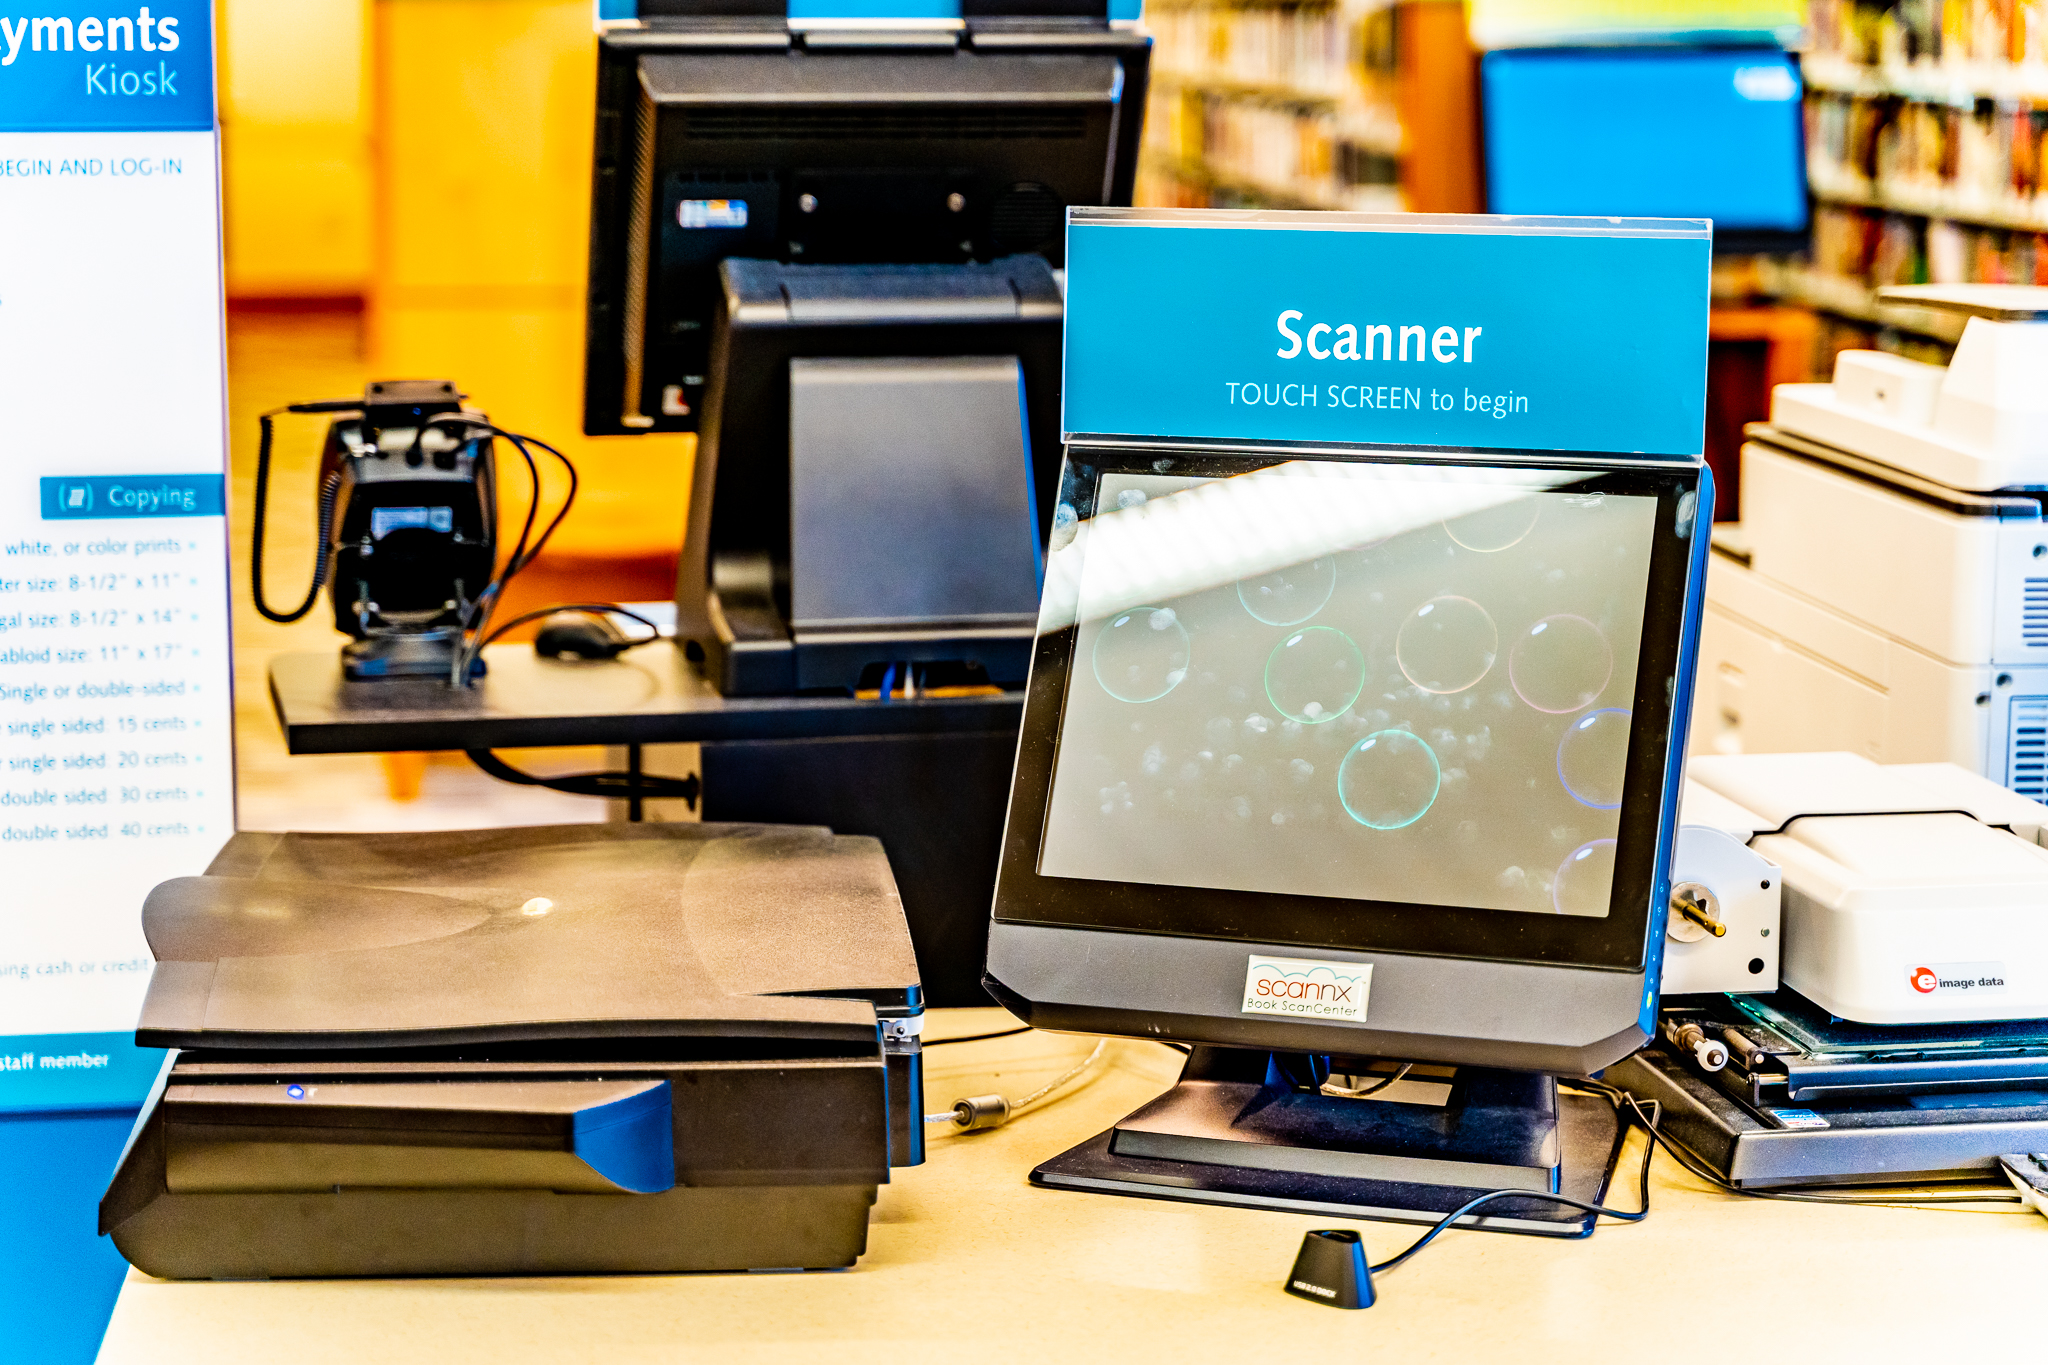 Scannx BookScan Center with flatbed scanner